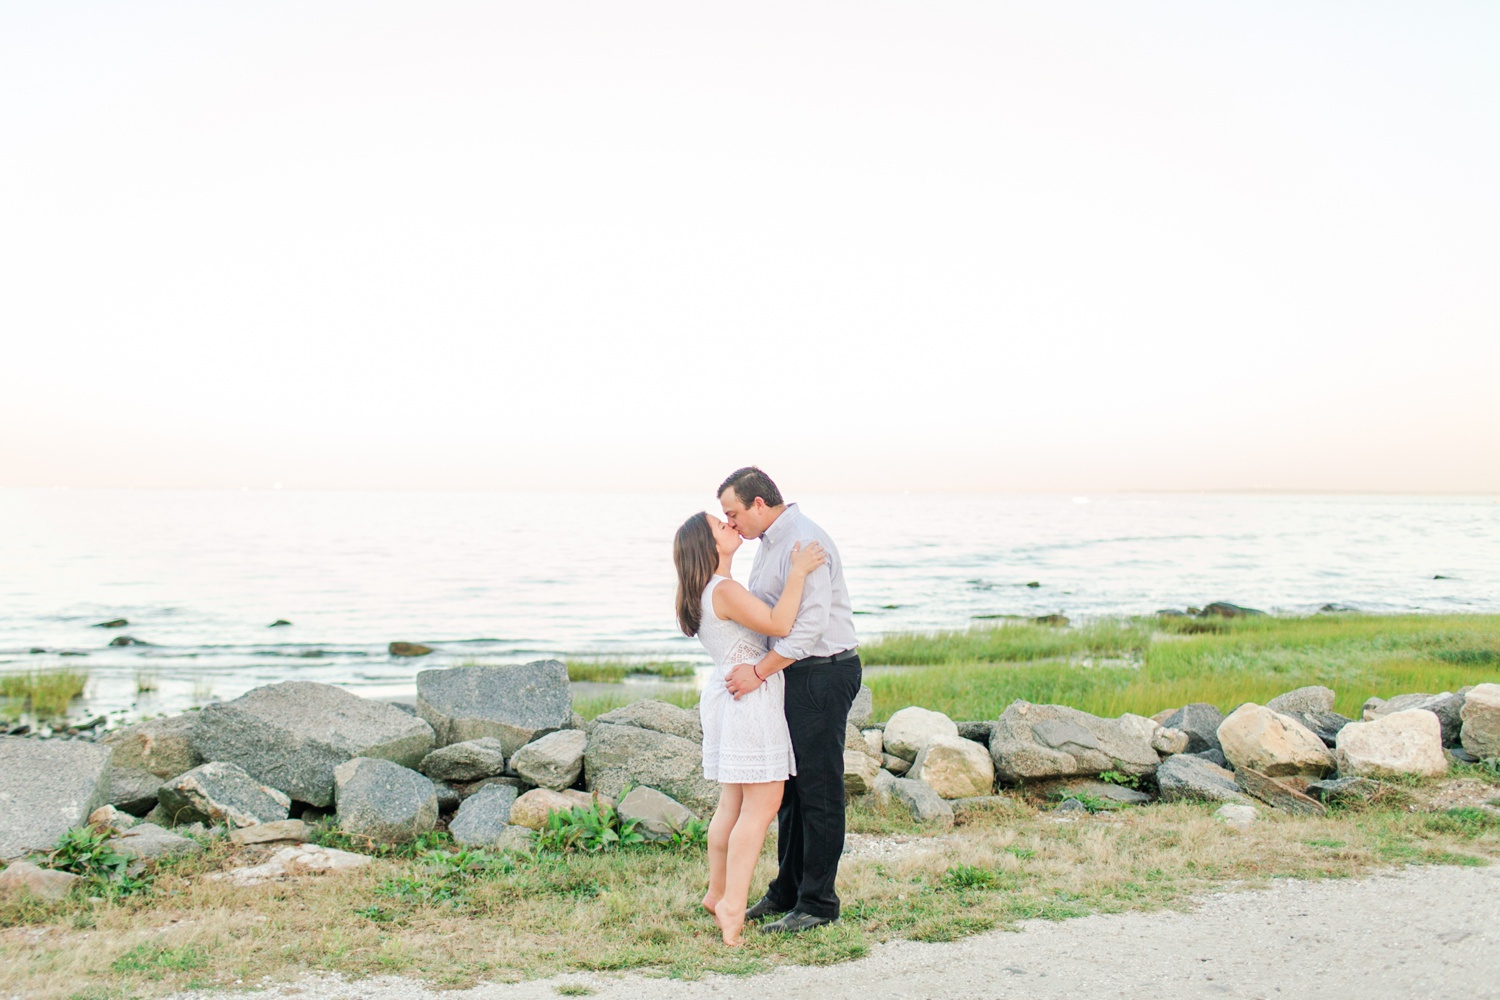 tods-point-engagement-session-greenwich-ct-top-connecticut-new-york-destination-wedding-photographer-shaina-lee-photography-photo-29.jpg